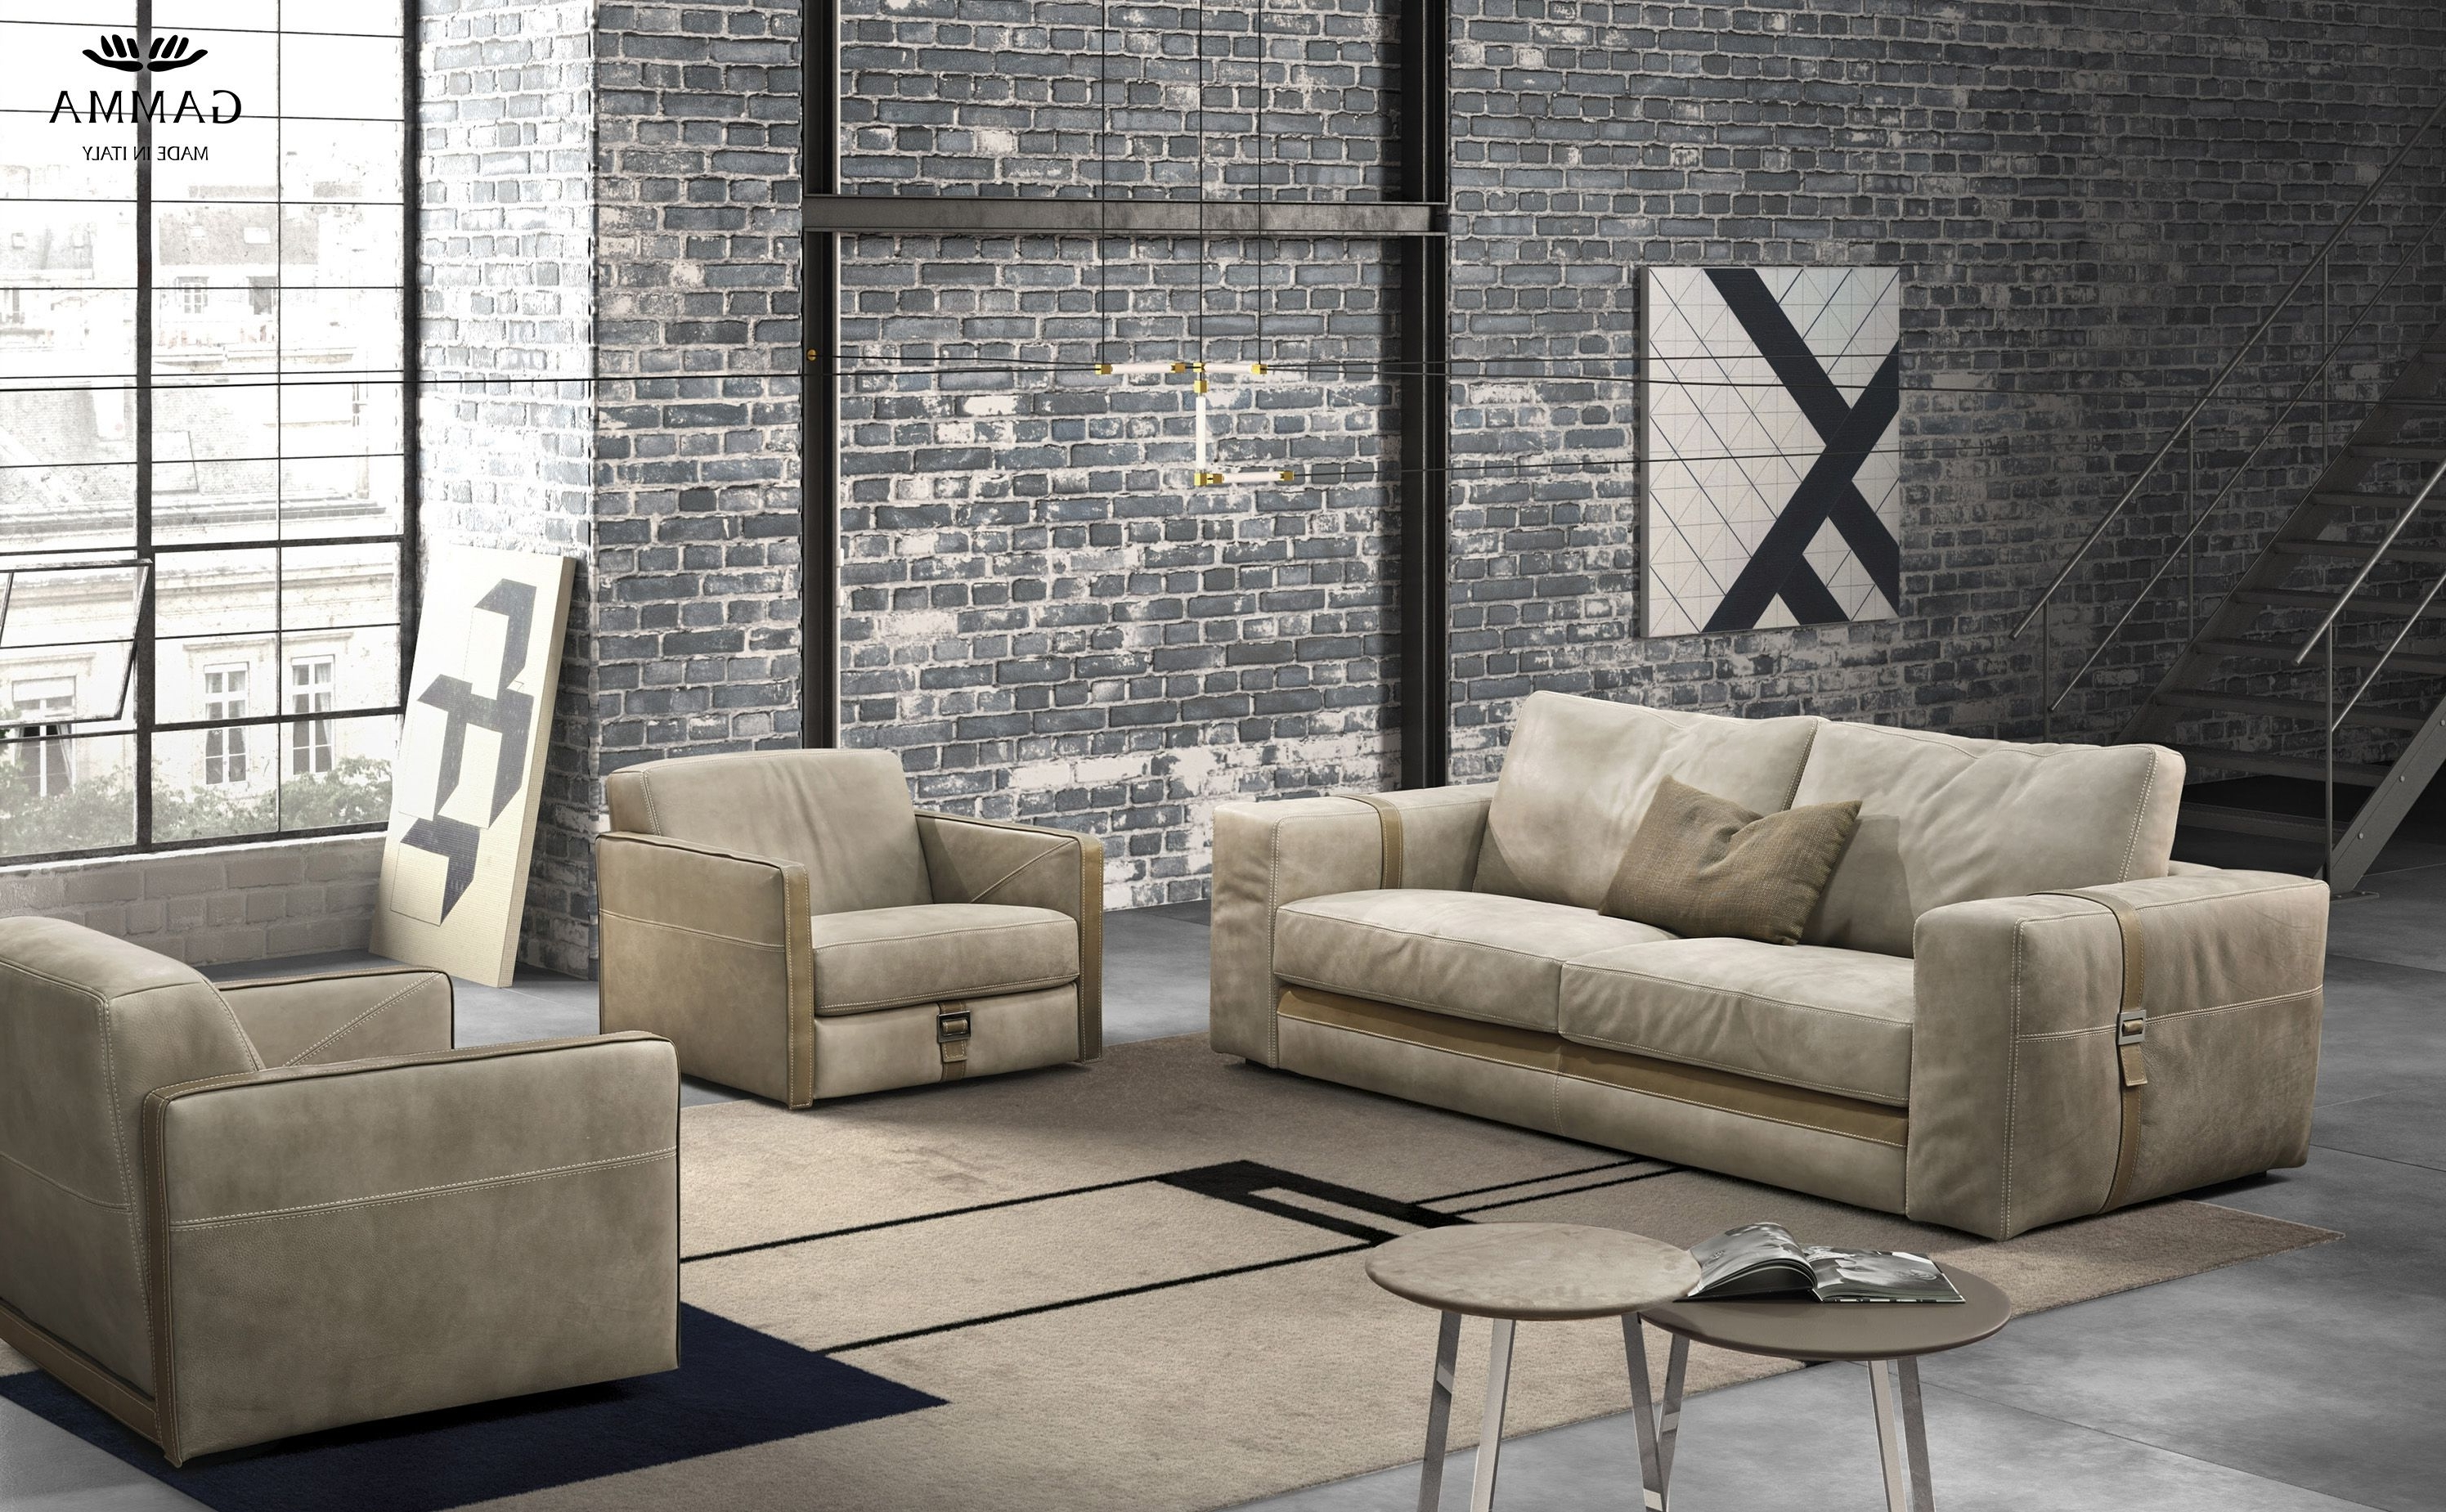 Famous Richmond Sofas Regarding Richmond Sofa #gammaarredamenti #gamma #madeinitaly #italy #design (View 1 of 20)